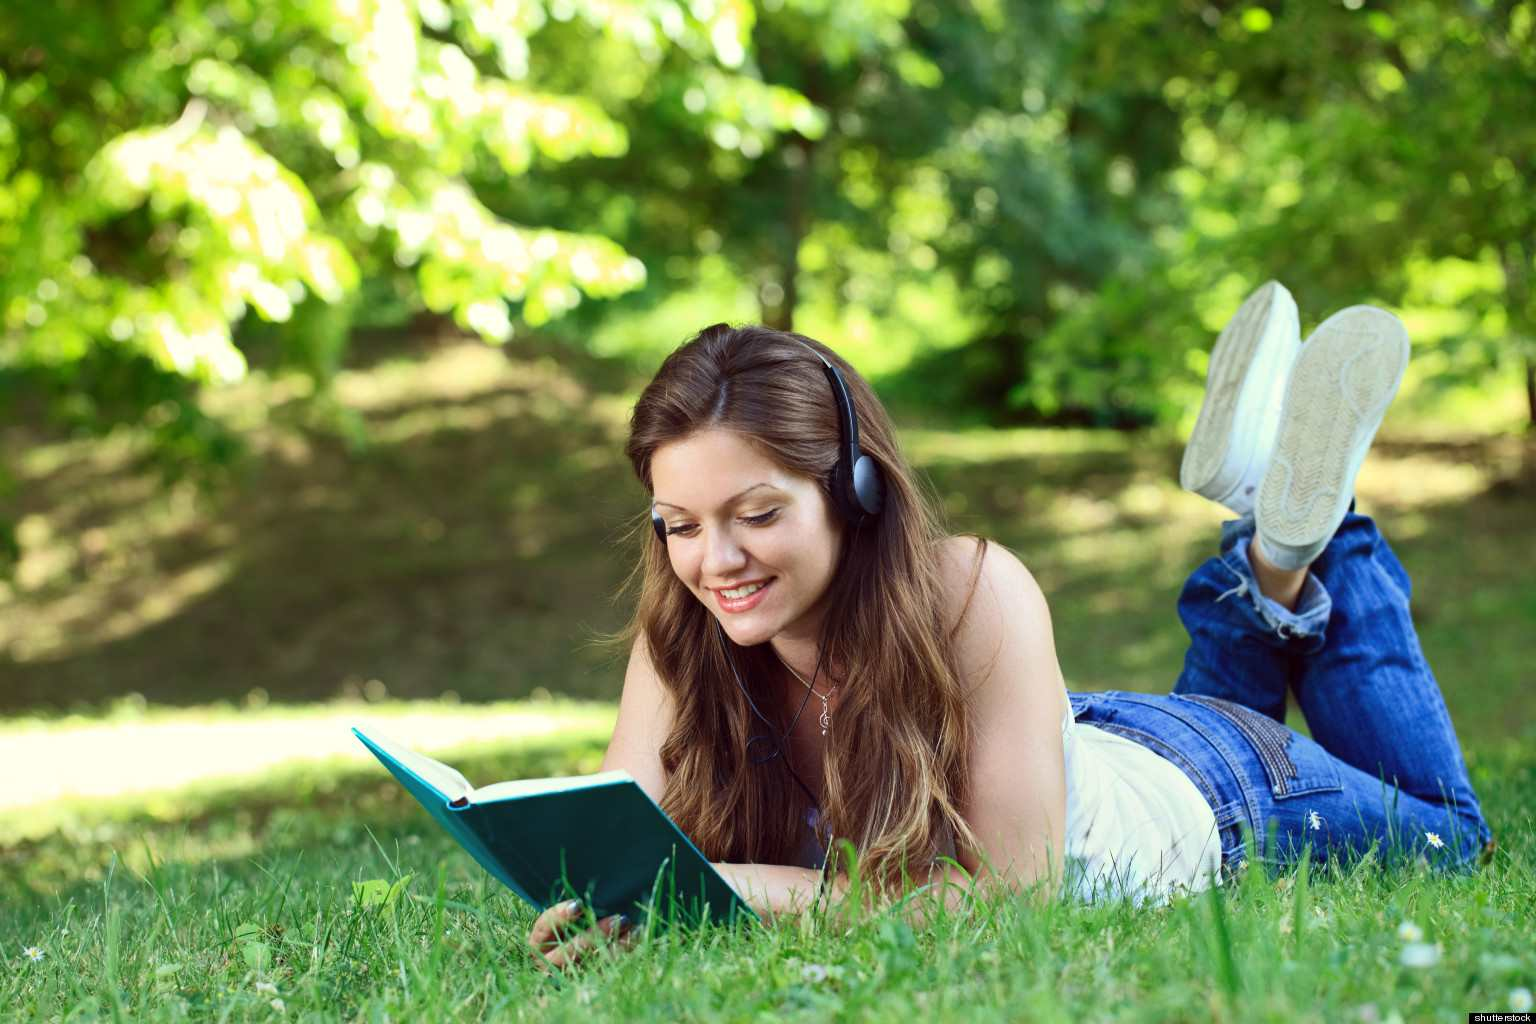 Studying With Music Enhances Performance